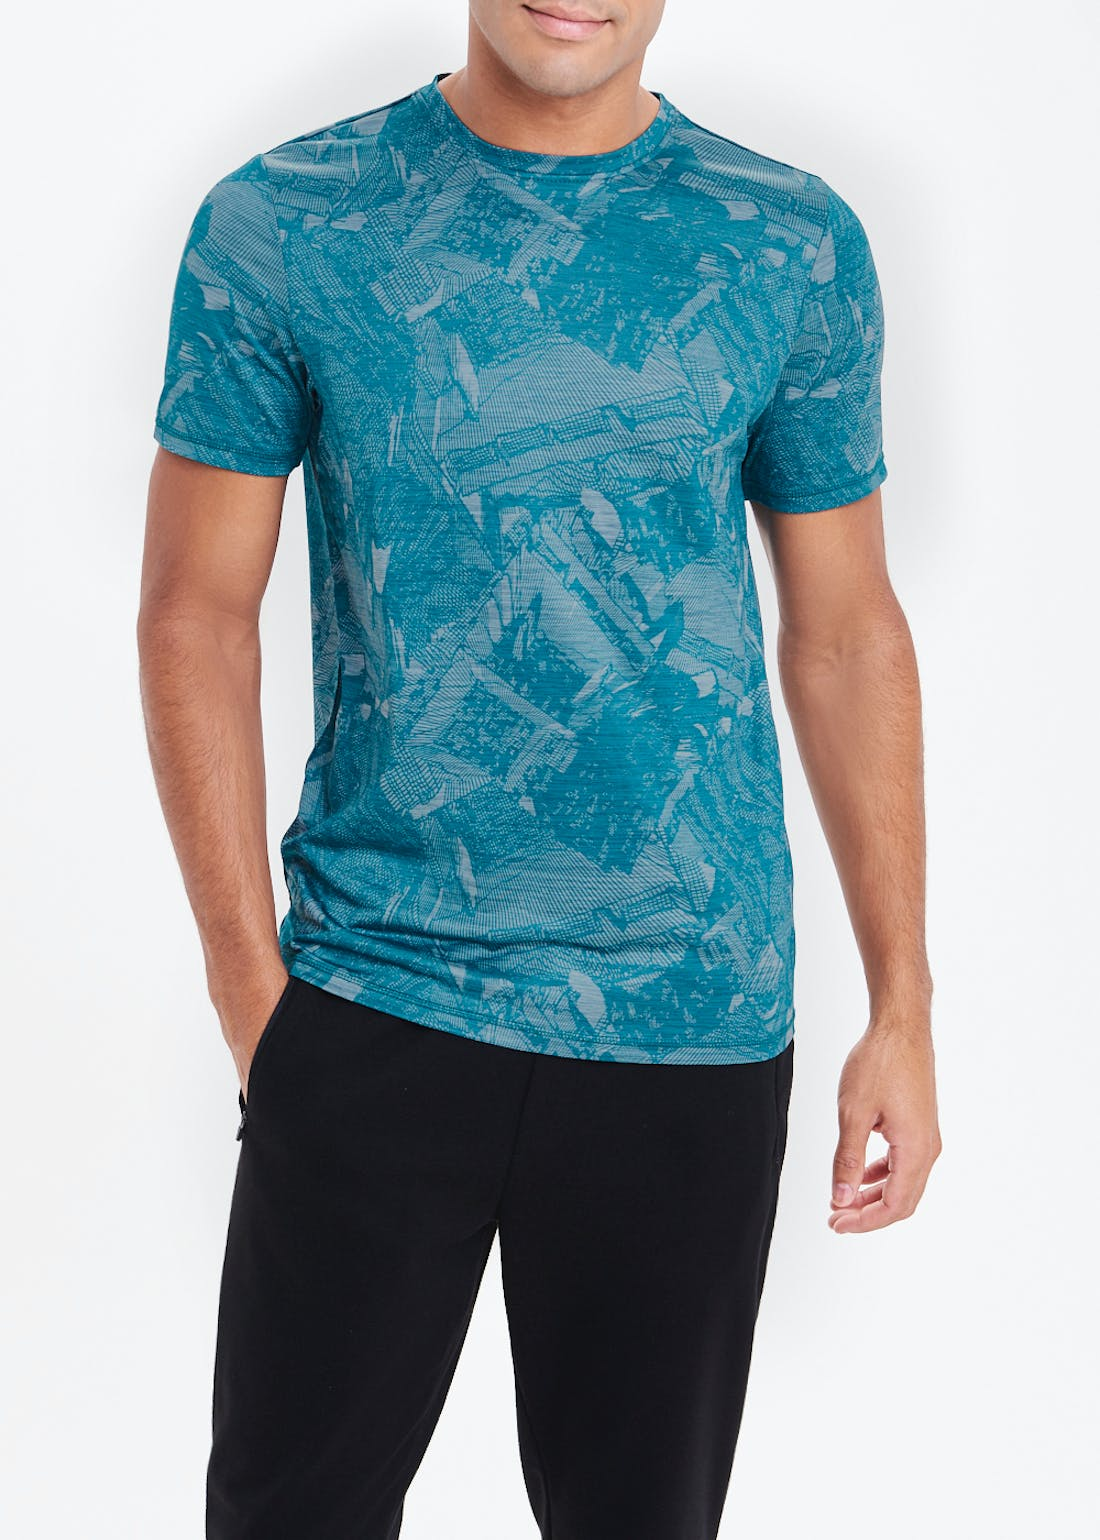 Souluxe Teal Printed Gym T-Shirt